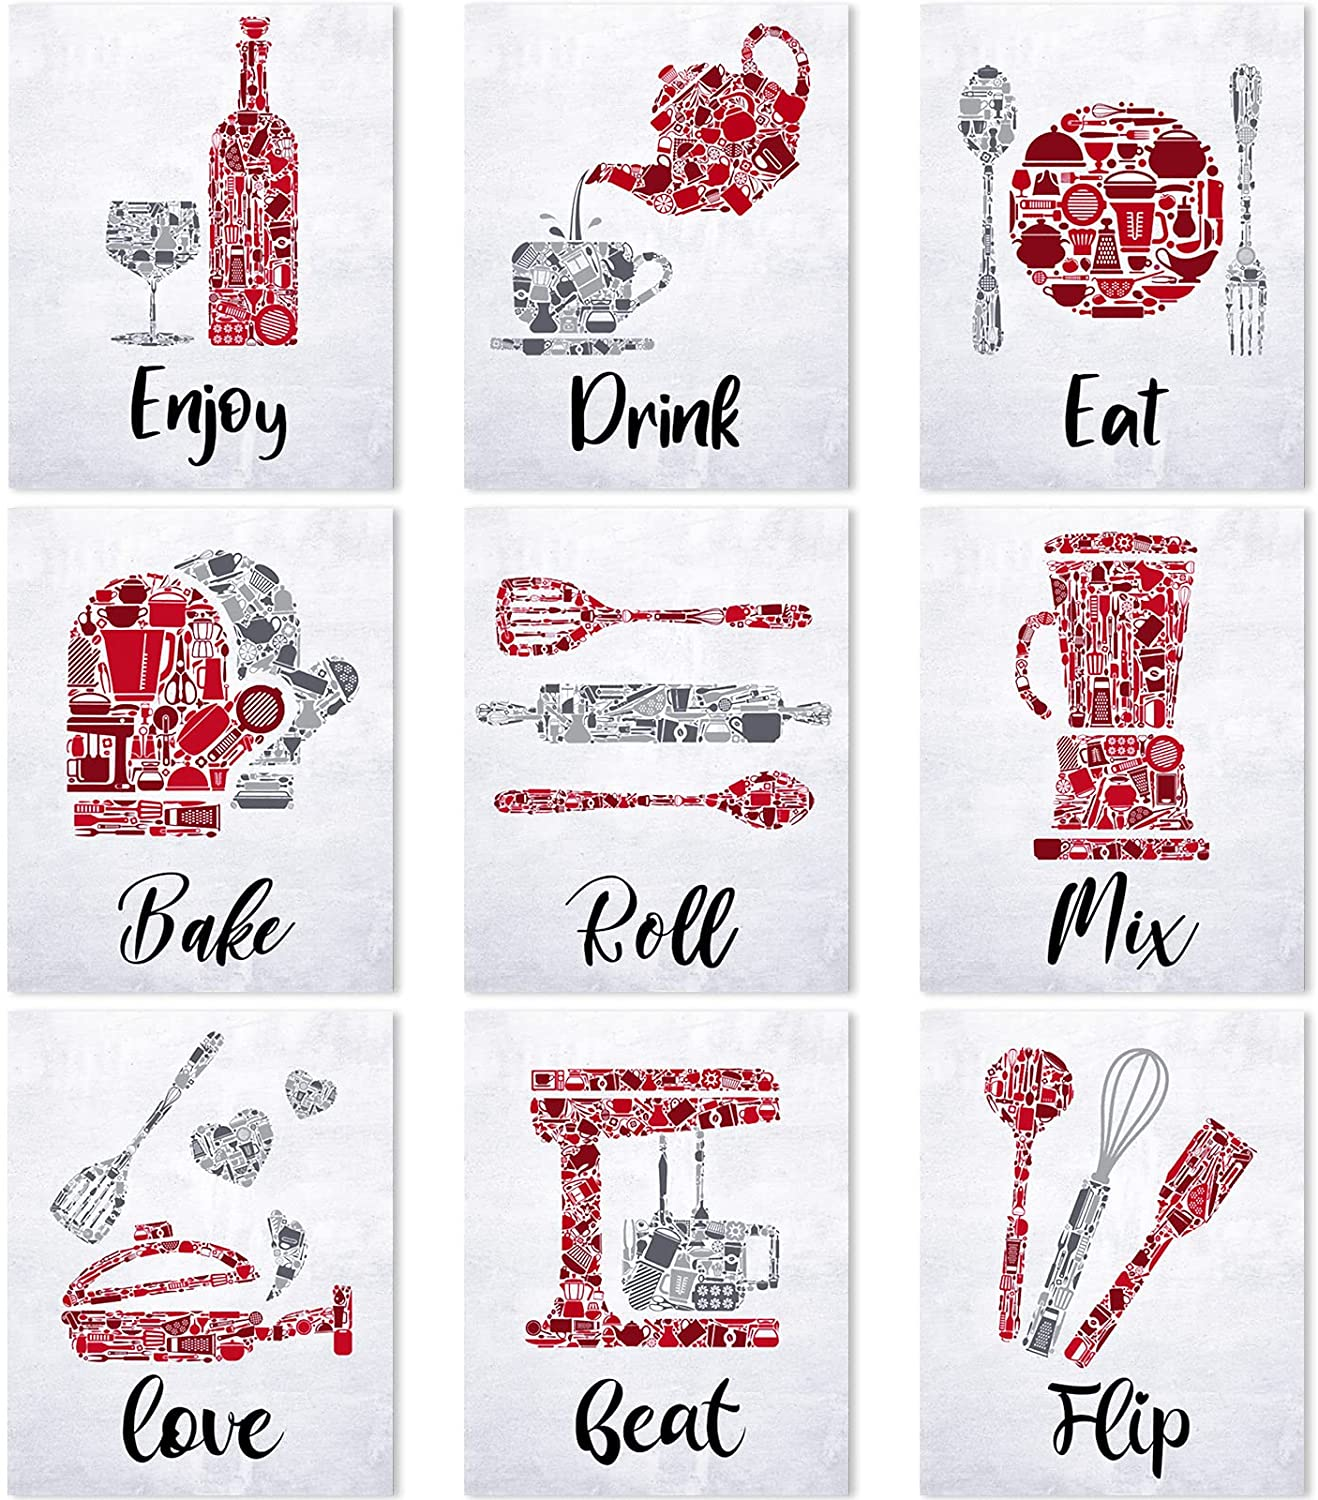 Zonon Red Kitchen Wall Art Prints Kitchen Wall Decorations Eat Drink Love Enjoy Hearts Prints Posters Signs Vintage Inspirational Kitchen Wall Art Decorations Home Decor Funny Sayings Quotes Unframed